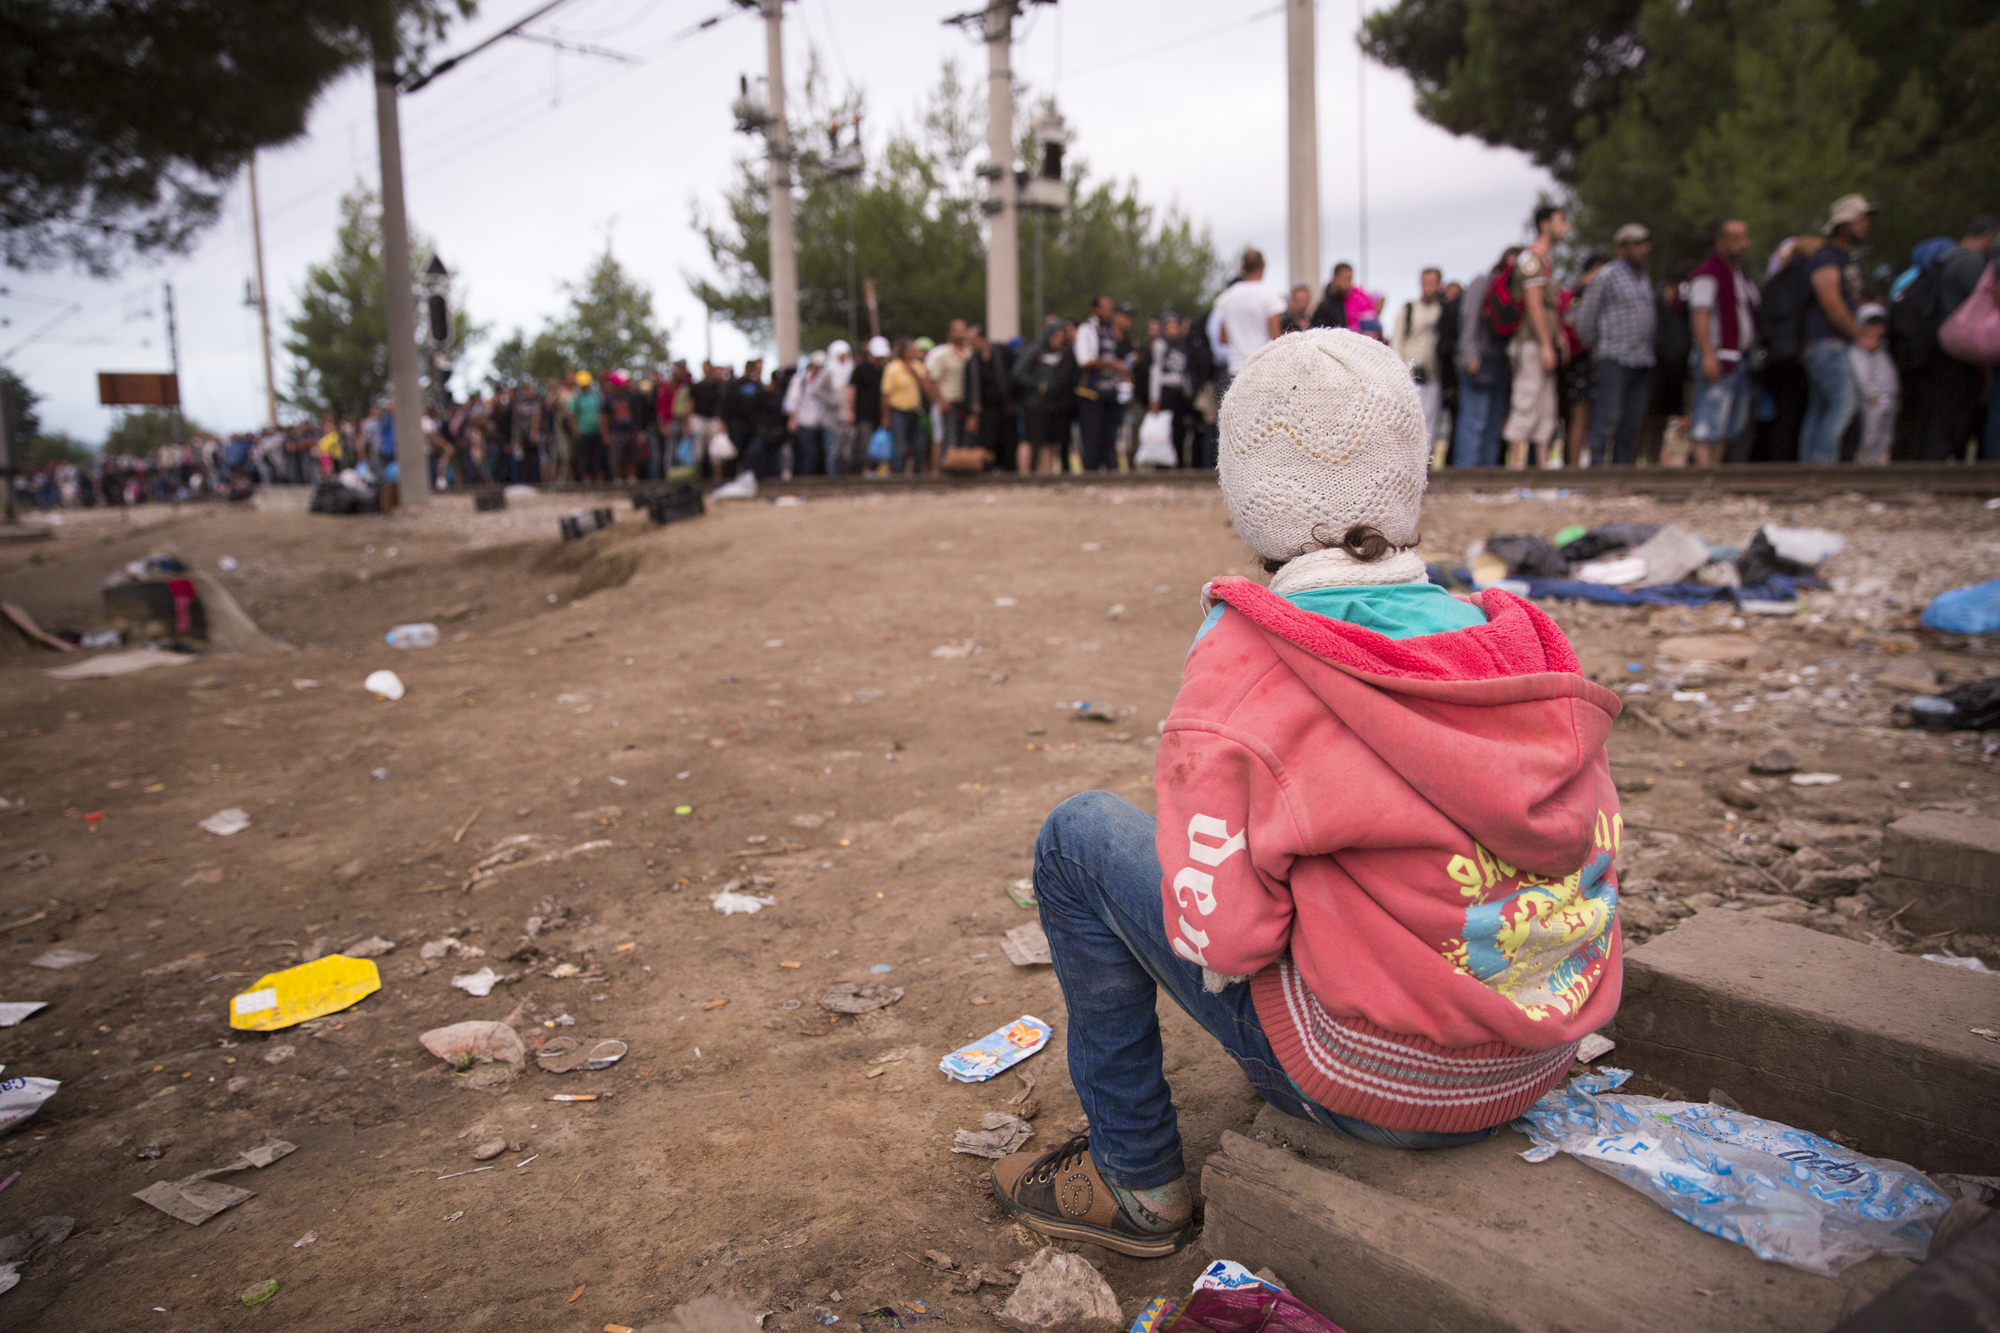 Refugees and migrants wait at the Macedonia border near the village of Idomeni, Greece, 24 August 2015.